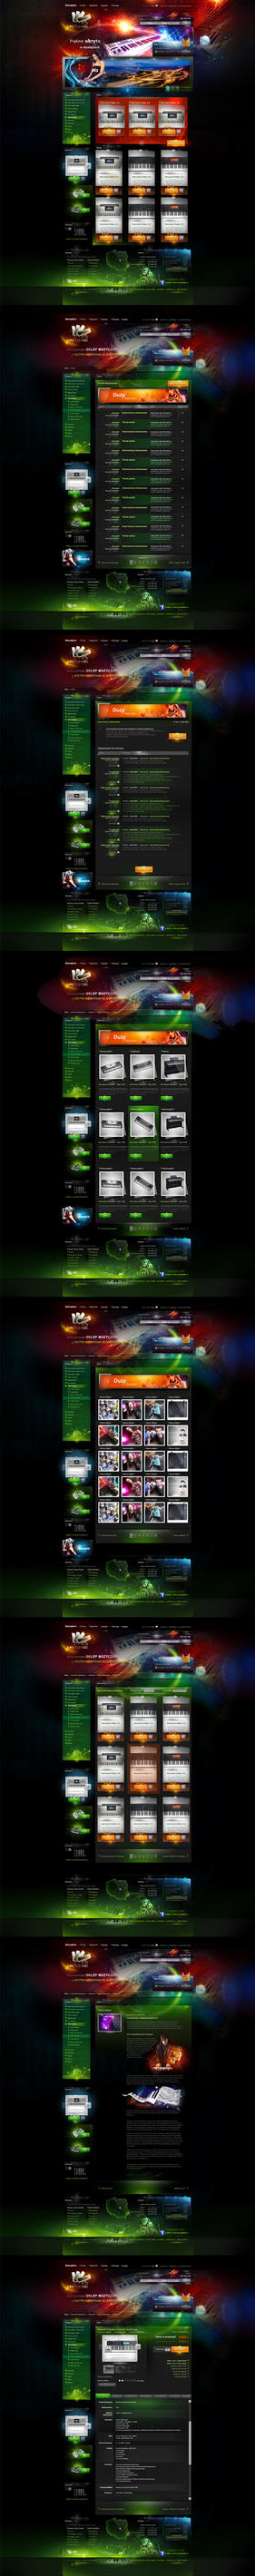 keyboard shop all page ver1.0b by webdesigner1921